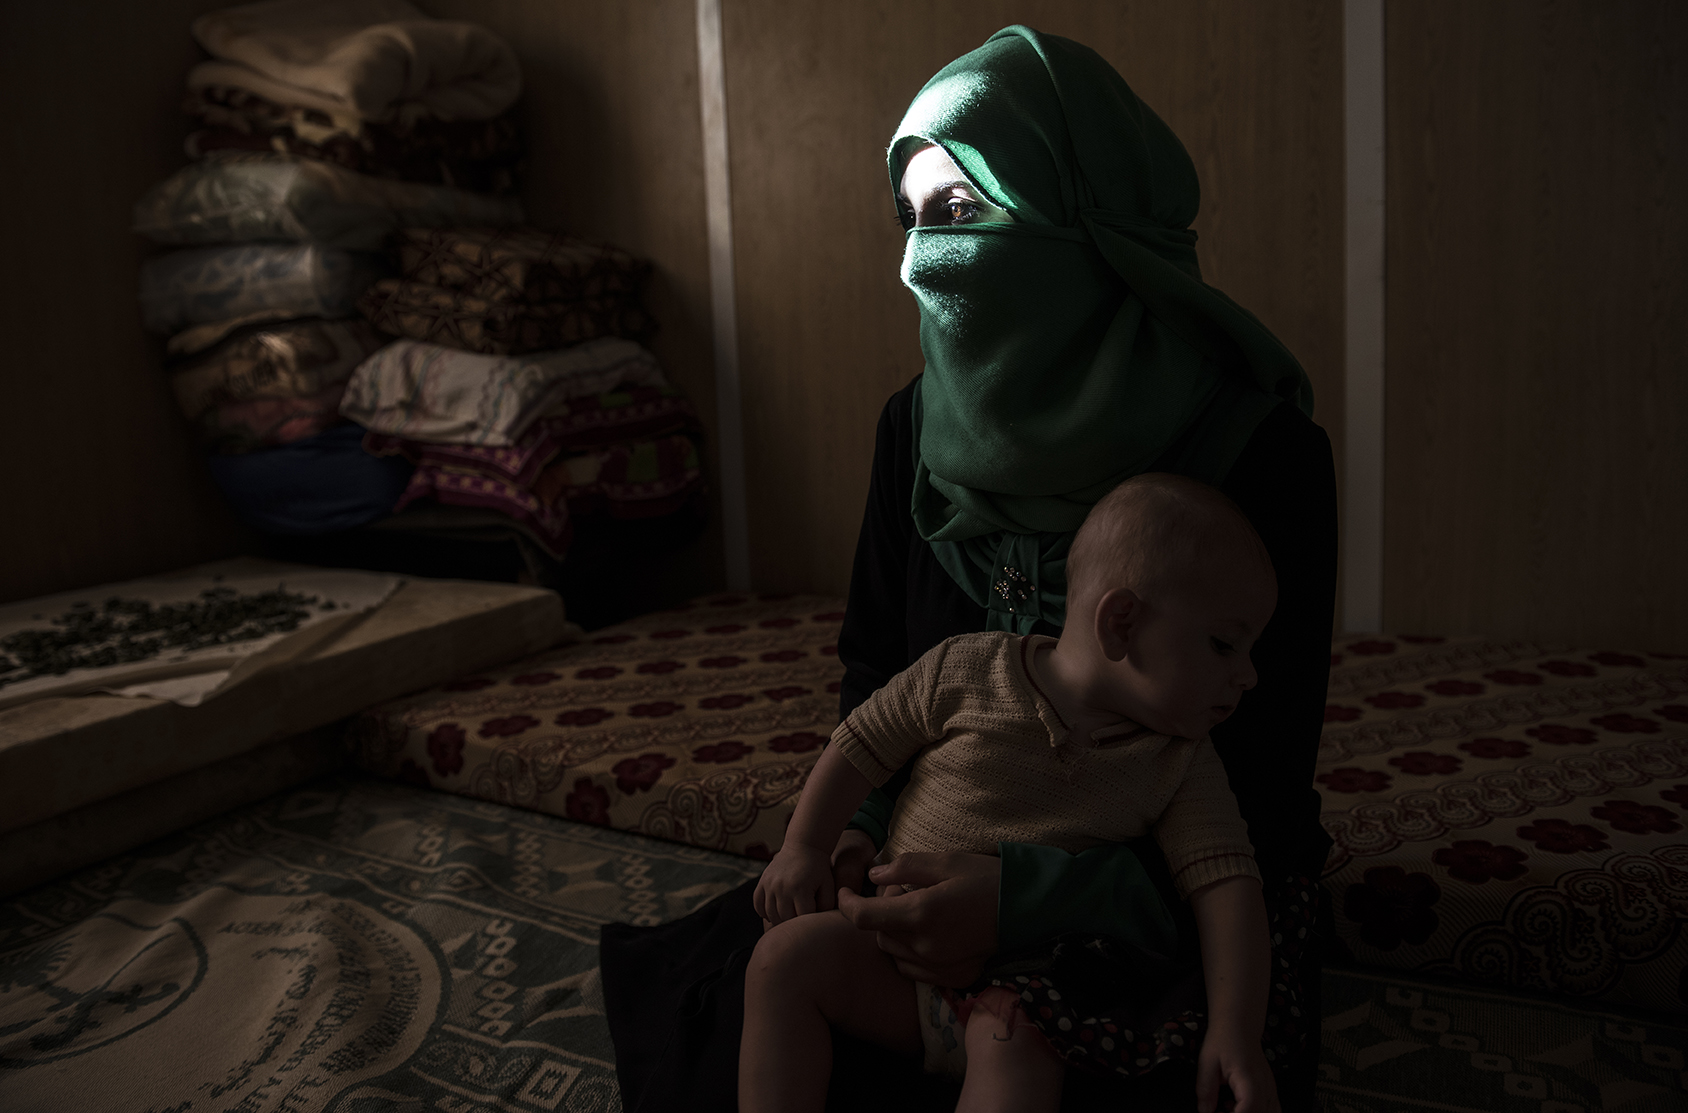 Yasmeen, 16, poses for a portrait with her baby months after leaving her abusive husband and returning home to live with her family at the Zaatari refugee camp in Jordan, August 27, 2014.  Yasmeen was married off to a 34 year-old man when she was fourteen years old, and from the first week they were married he abused her physically and psychologically, leaving her covered in blood, and with choke marks around her neck.  {quote}I expected it would be paradise,{quote} Yasmeen said referring to the marriage {quote}..I never expected he would beat me. I knew from the first time he hit me that the future was over.{quote}  While marriage under the age of eighteen was a common Syrian tradition before the start of the civil war, more and more Syrian girls are marrying at a younger age because of the insecurity of the war,  because many families feel the girls in their family may be sexually harassed if they are not under the care of a husband, and because of prospect of alleviating the financial burden of one more mouth to feed.